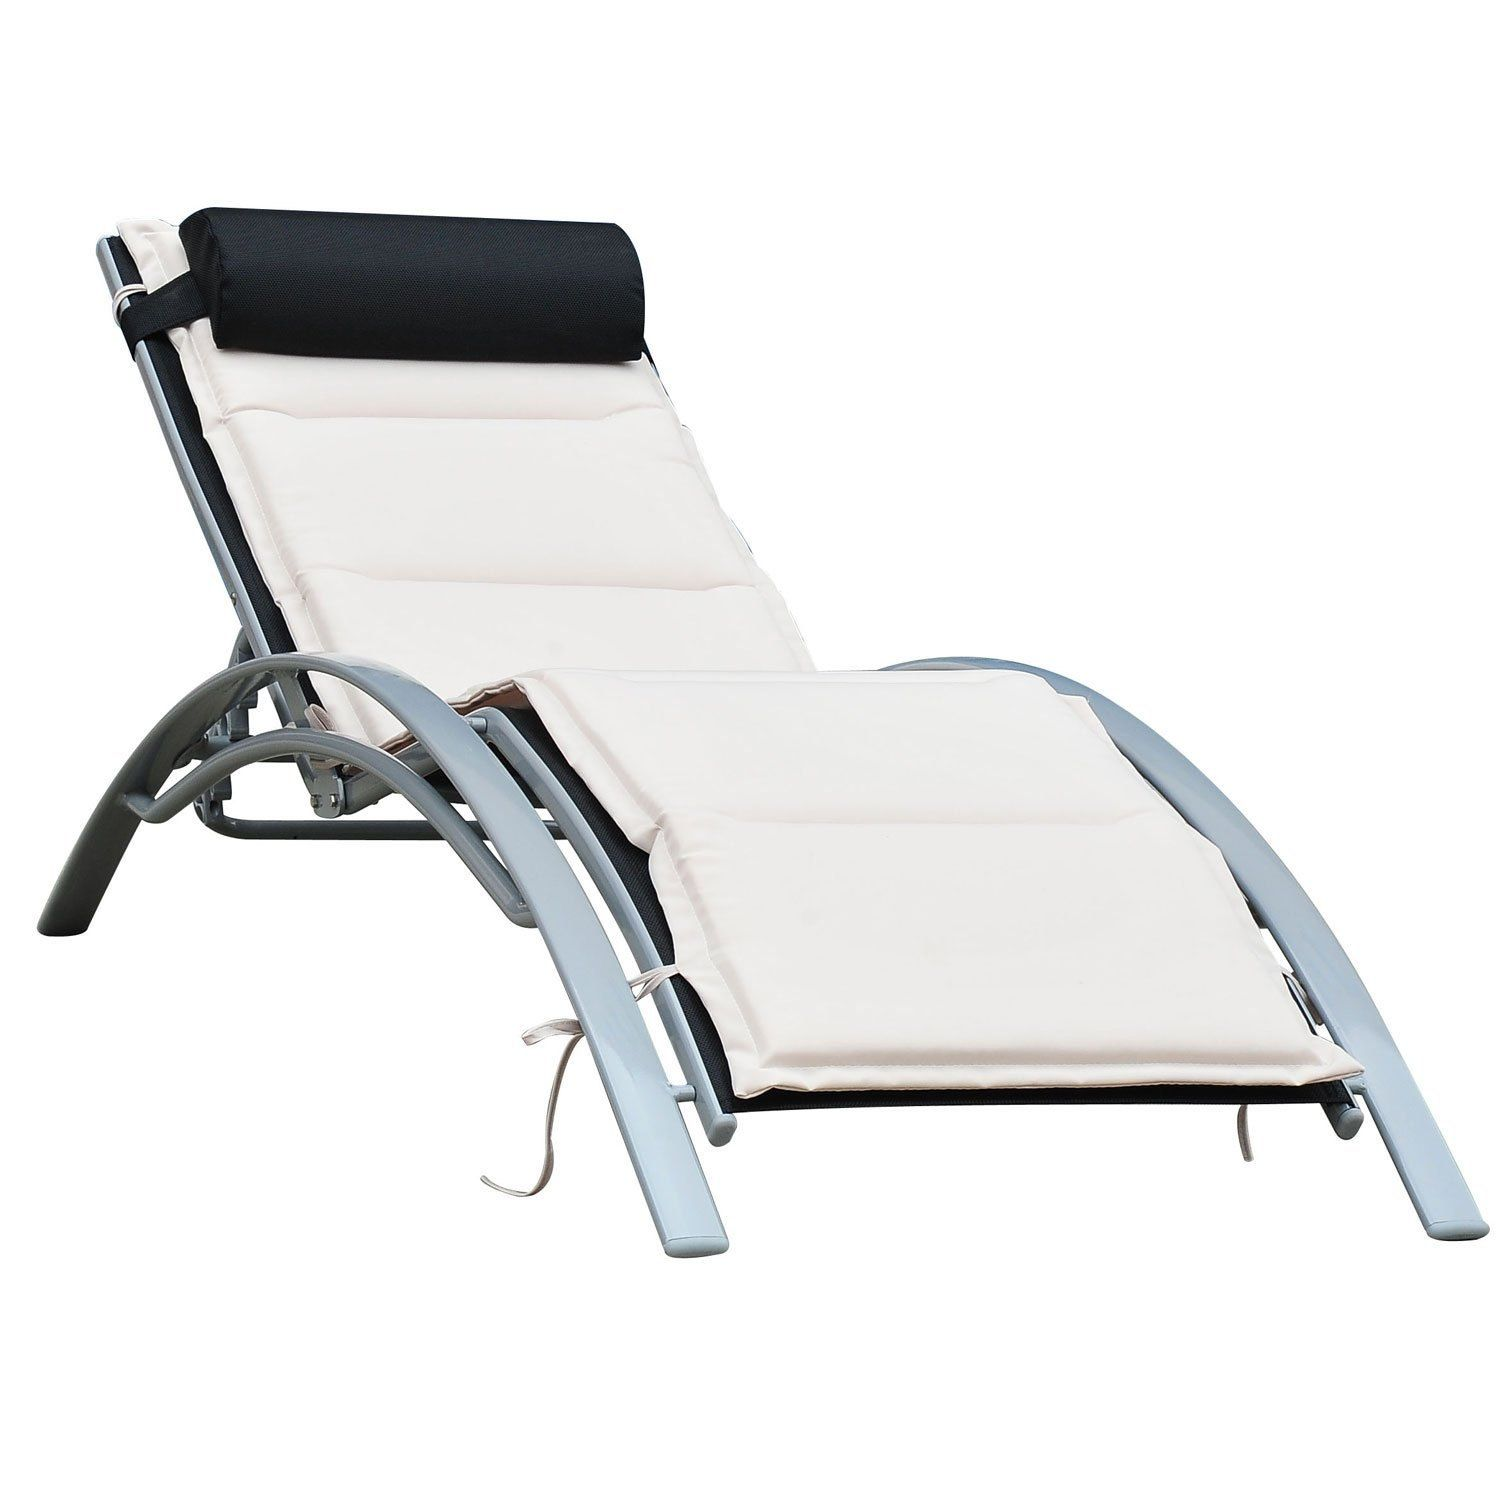 Relaxliege Mit Kippfunktion Relaxliege Garten Mit Kippfunktion Wir Haben Es Jemals Gesehen Von Relaxliege Garten >>> Beliebt… | White Patio Furniture, Sun Lounger, Patio Lounge Chairs